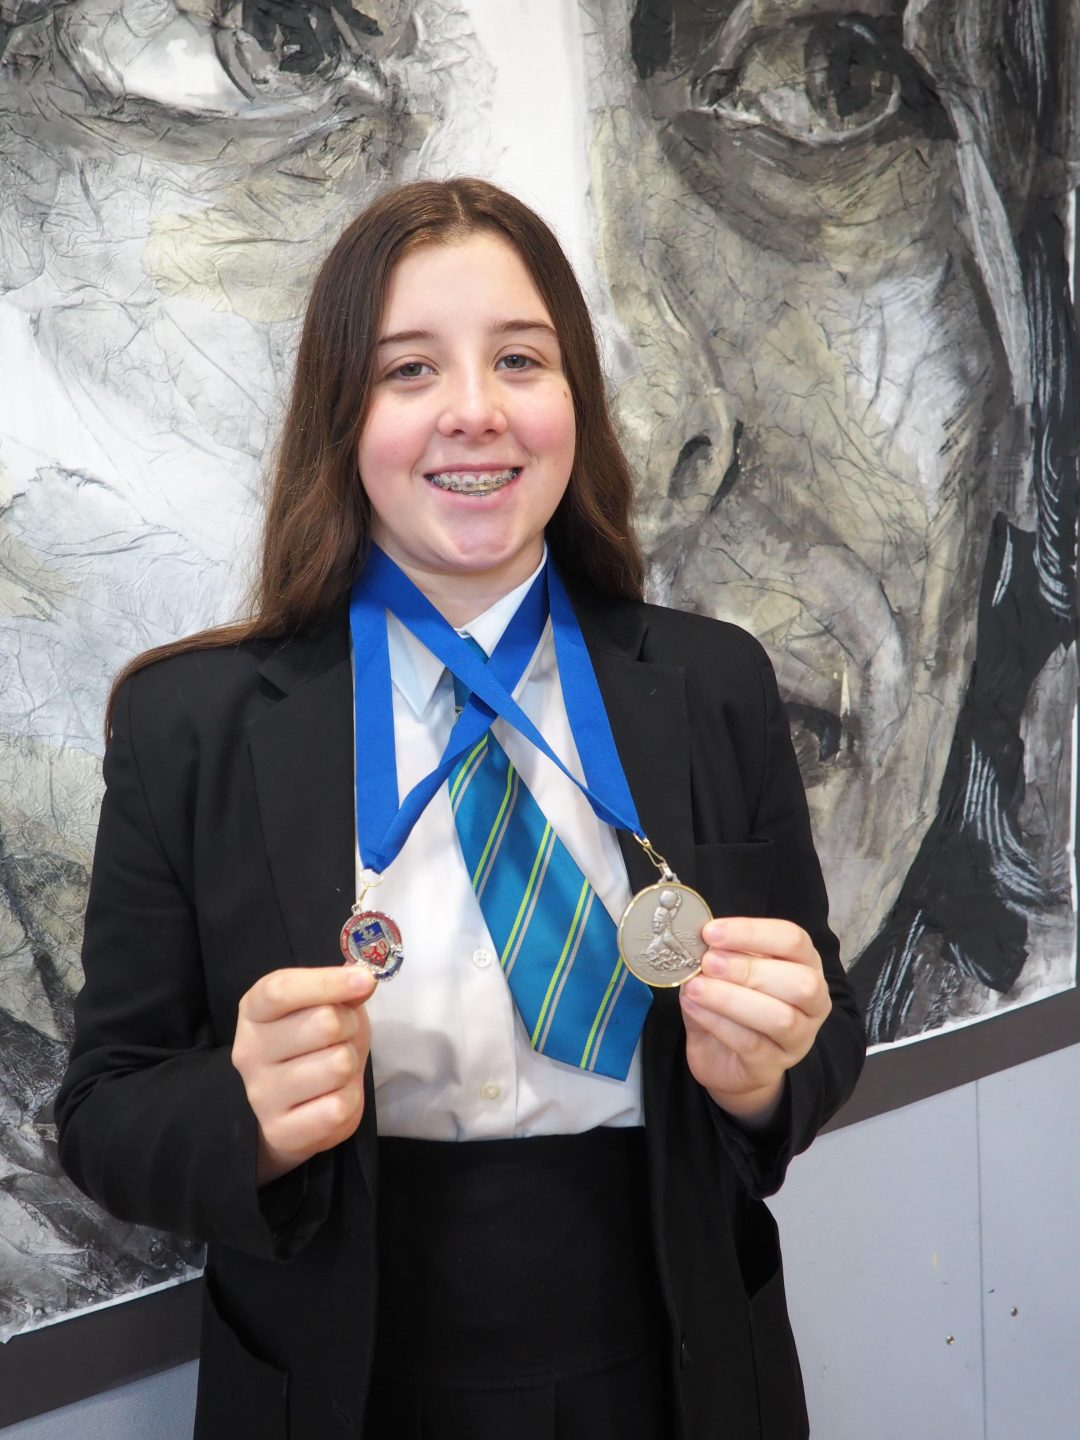 Sophie with her medals